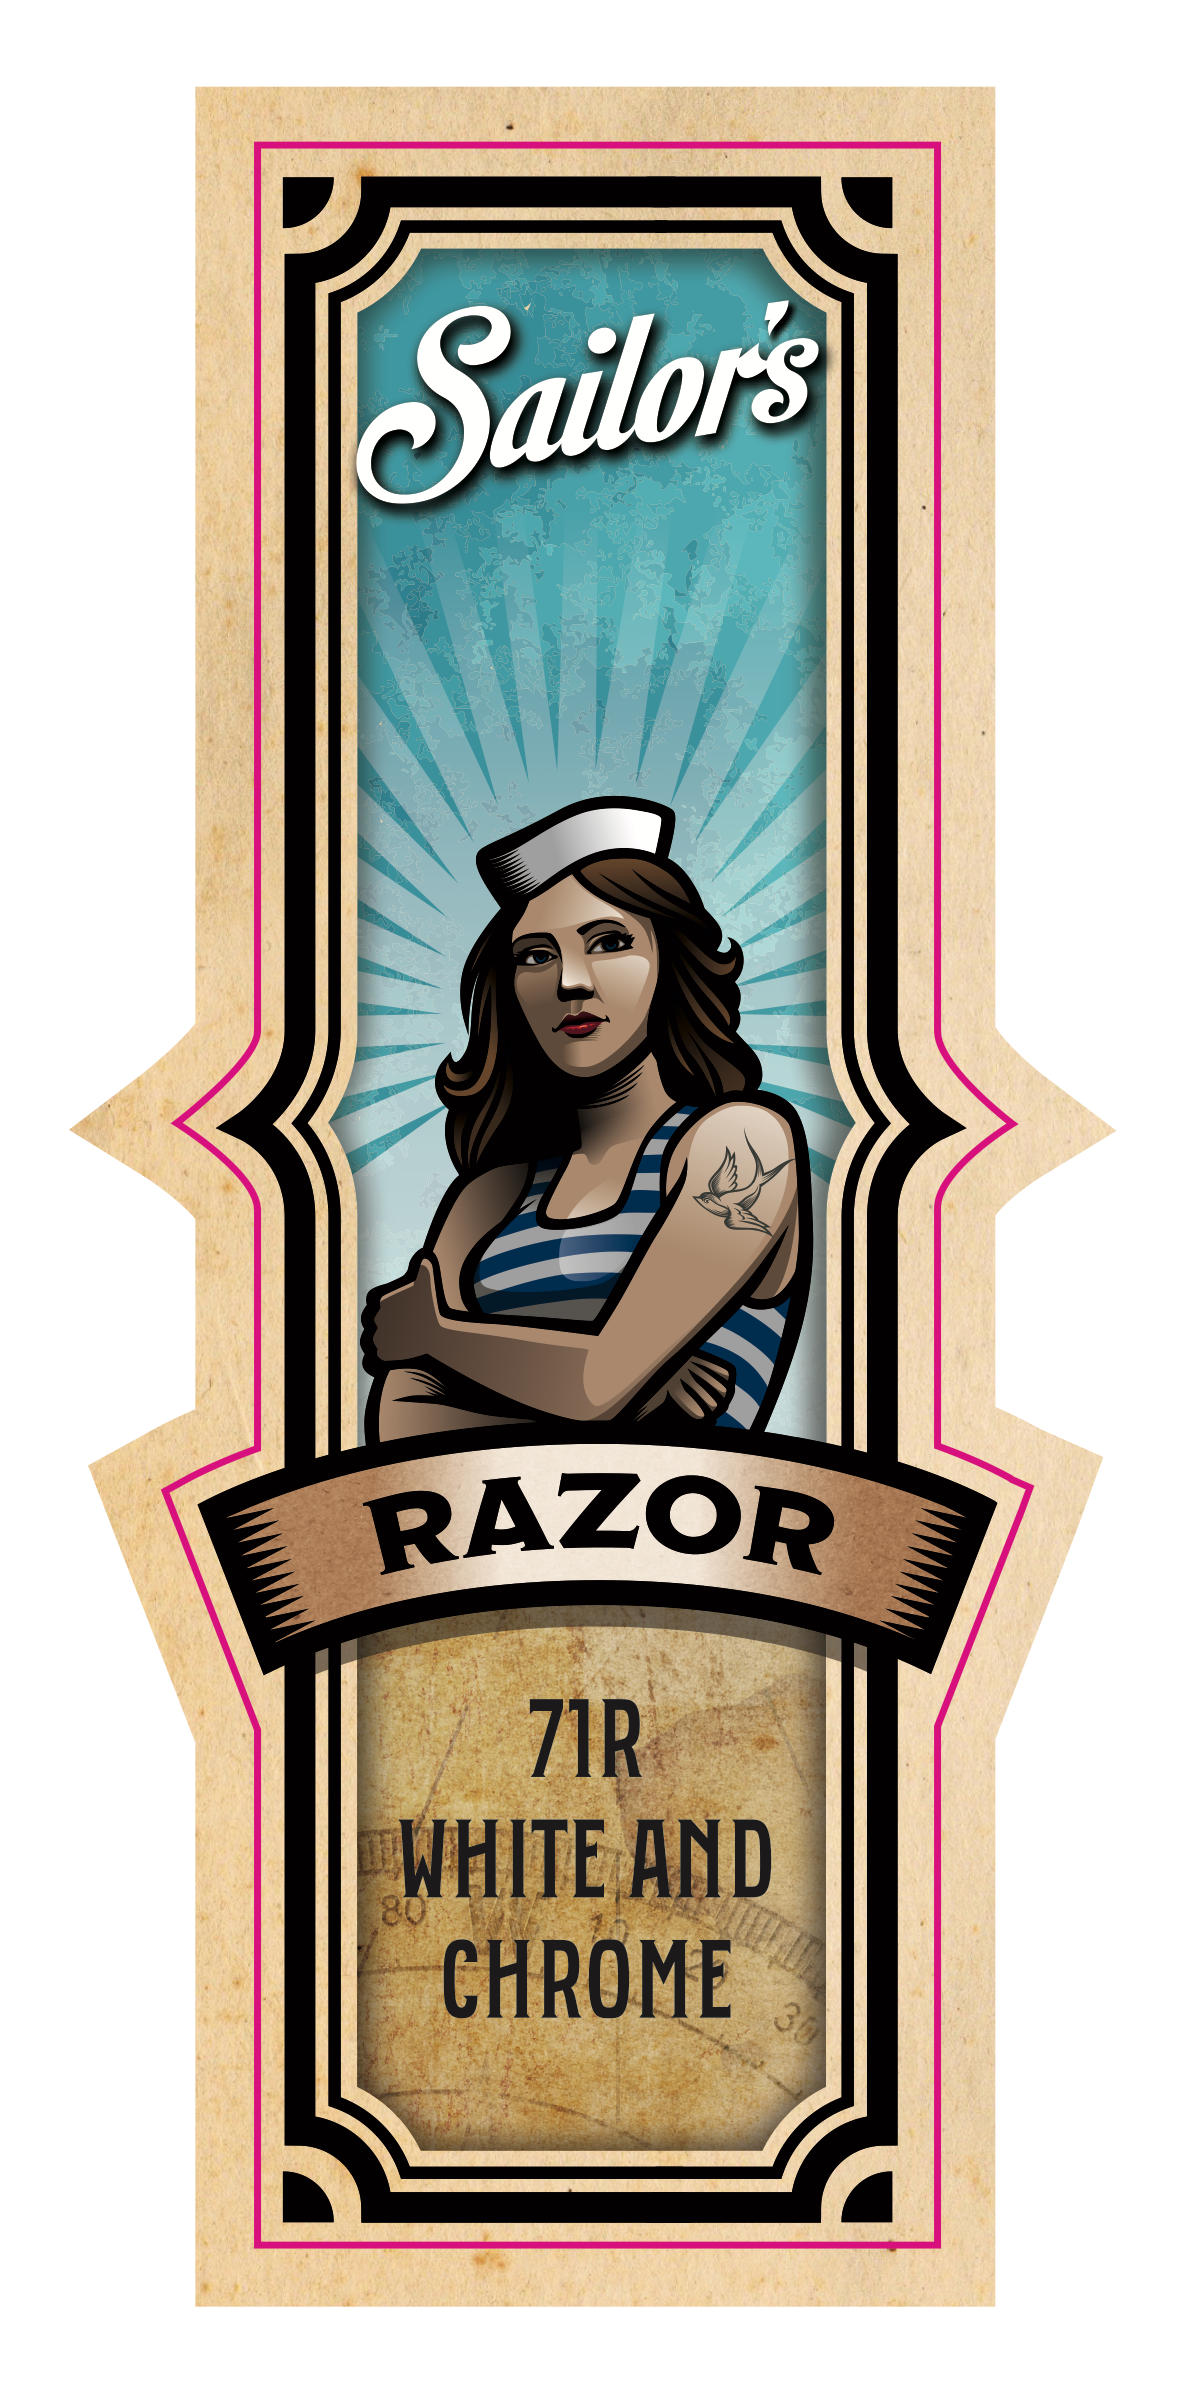 Sailor's label with female product